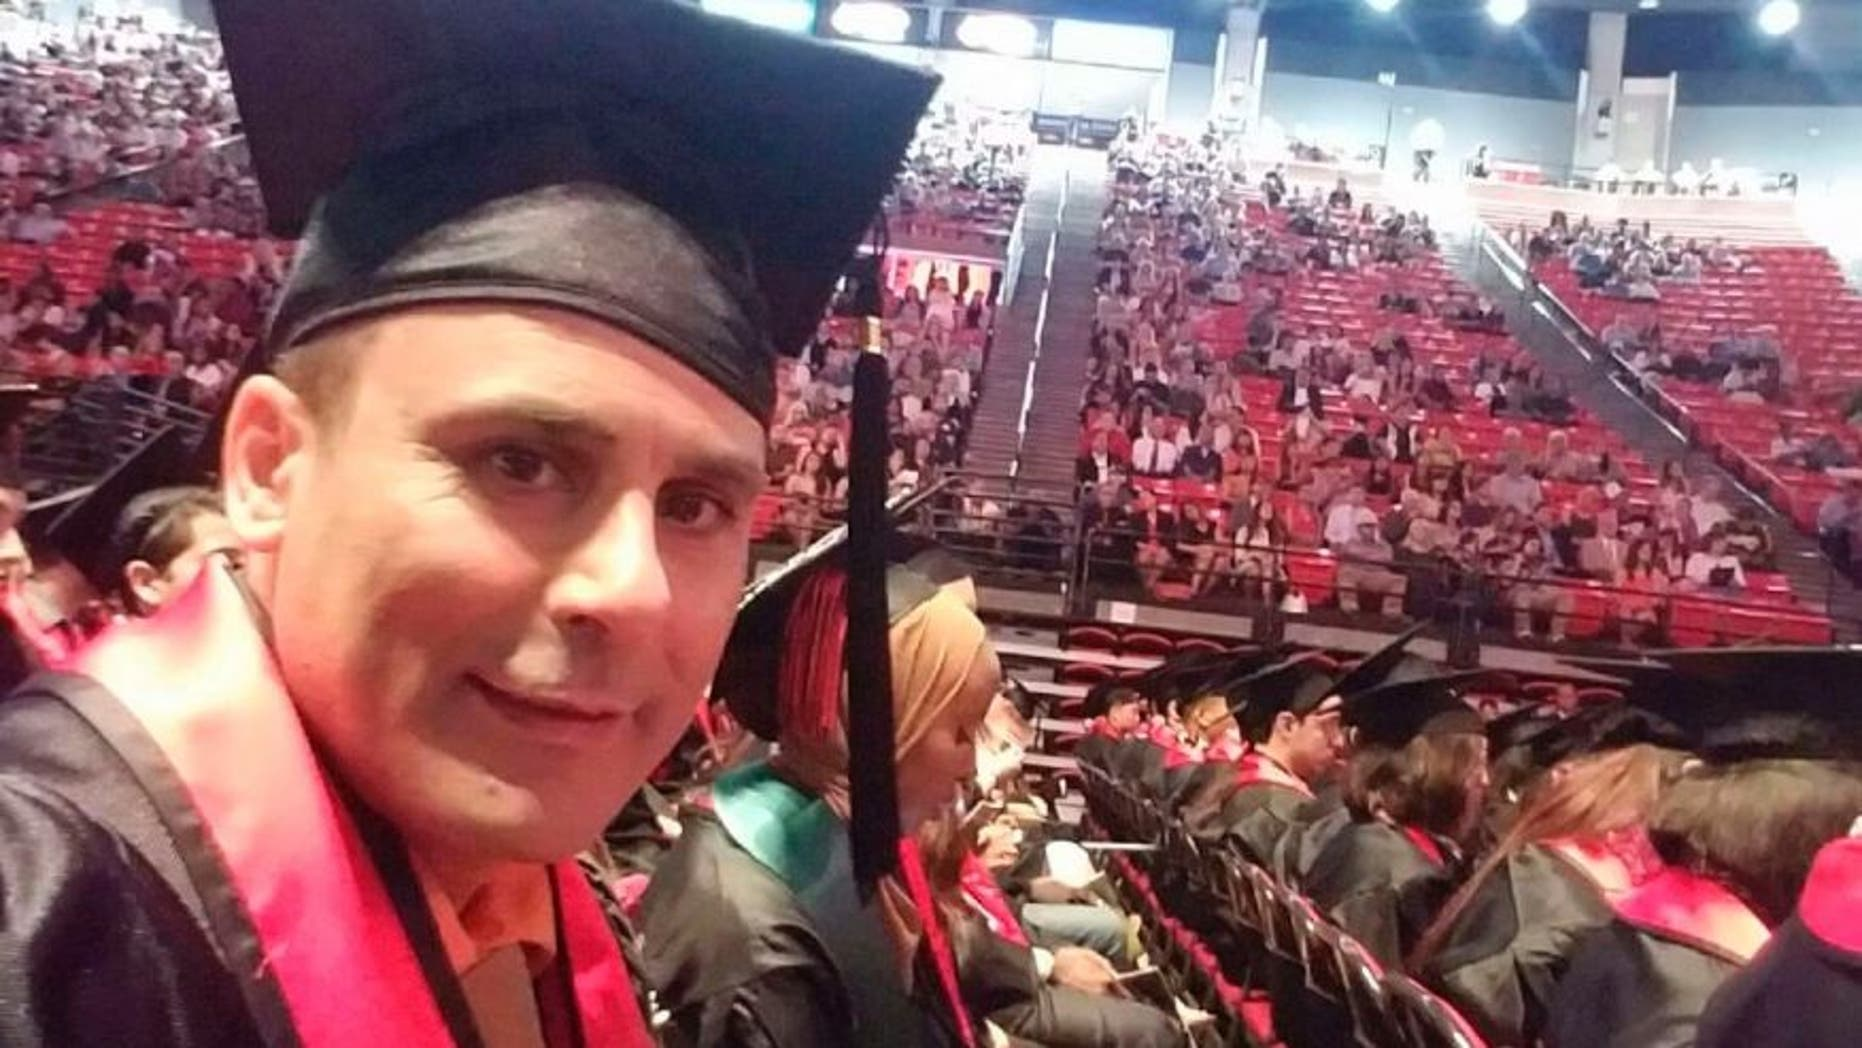 Robin Shahini during his San Diego State University graduation ceremony in May 2016.